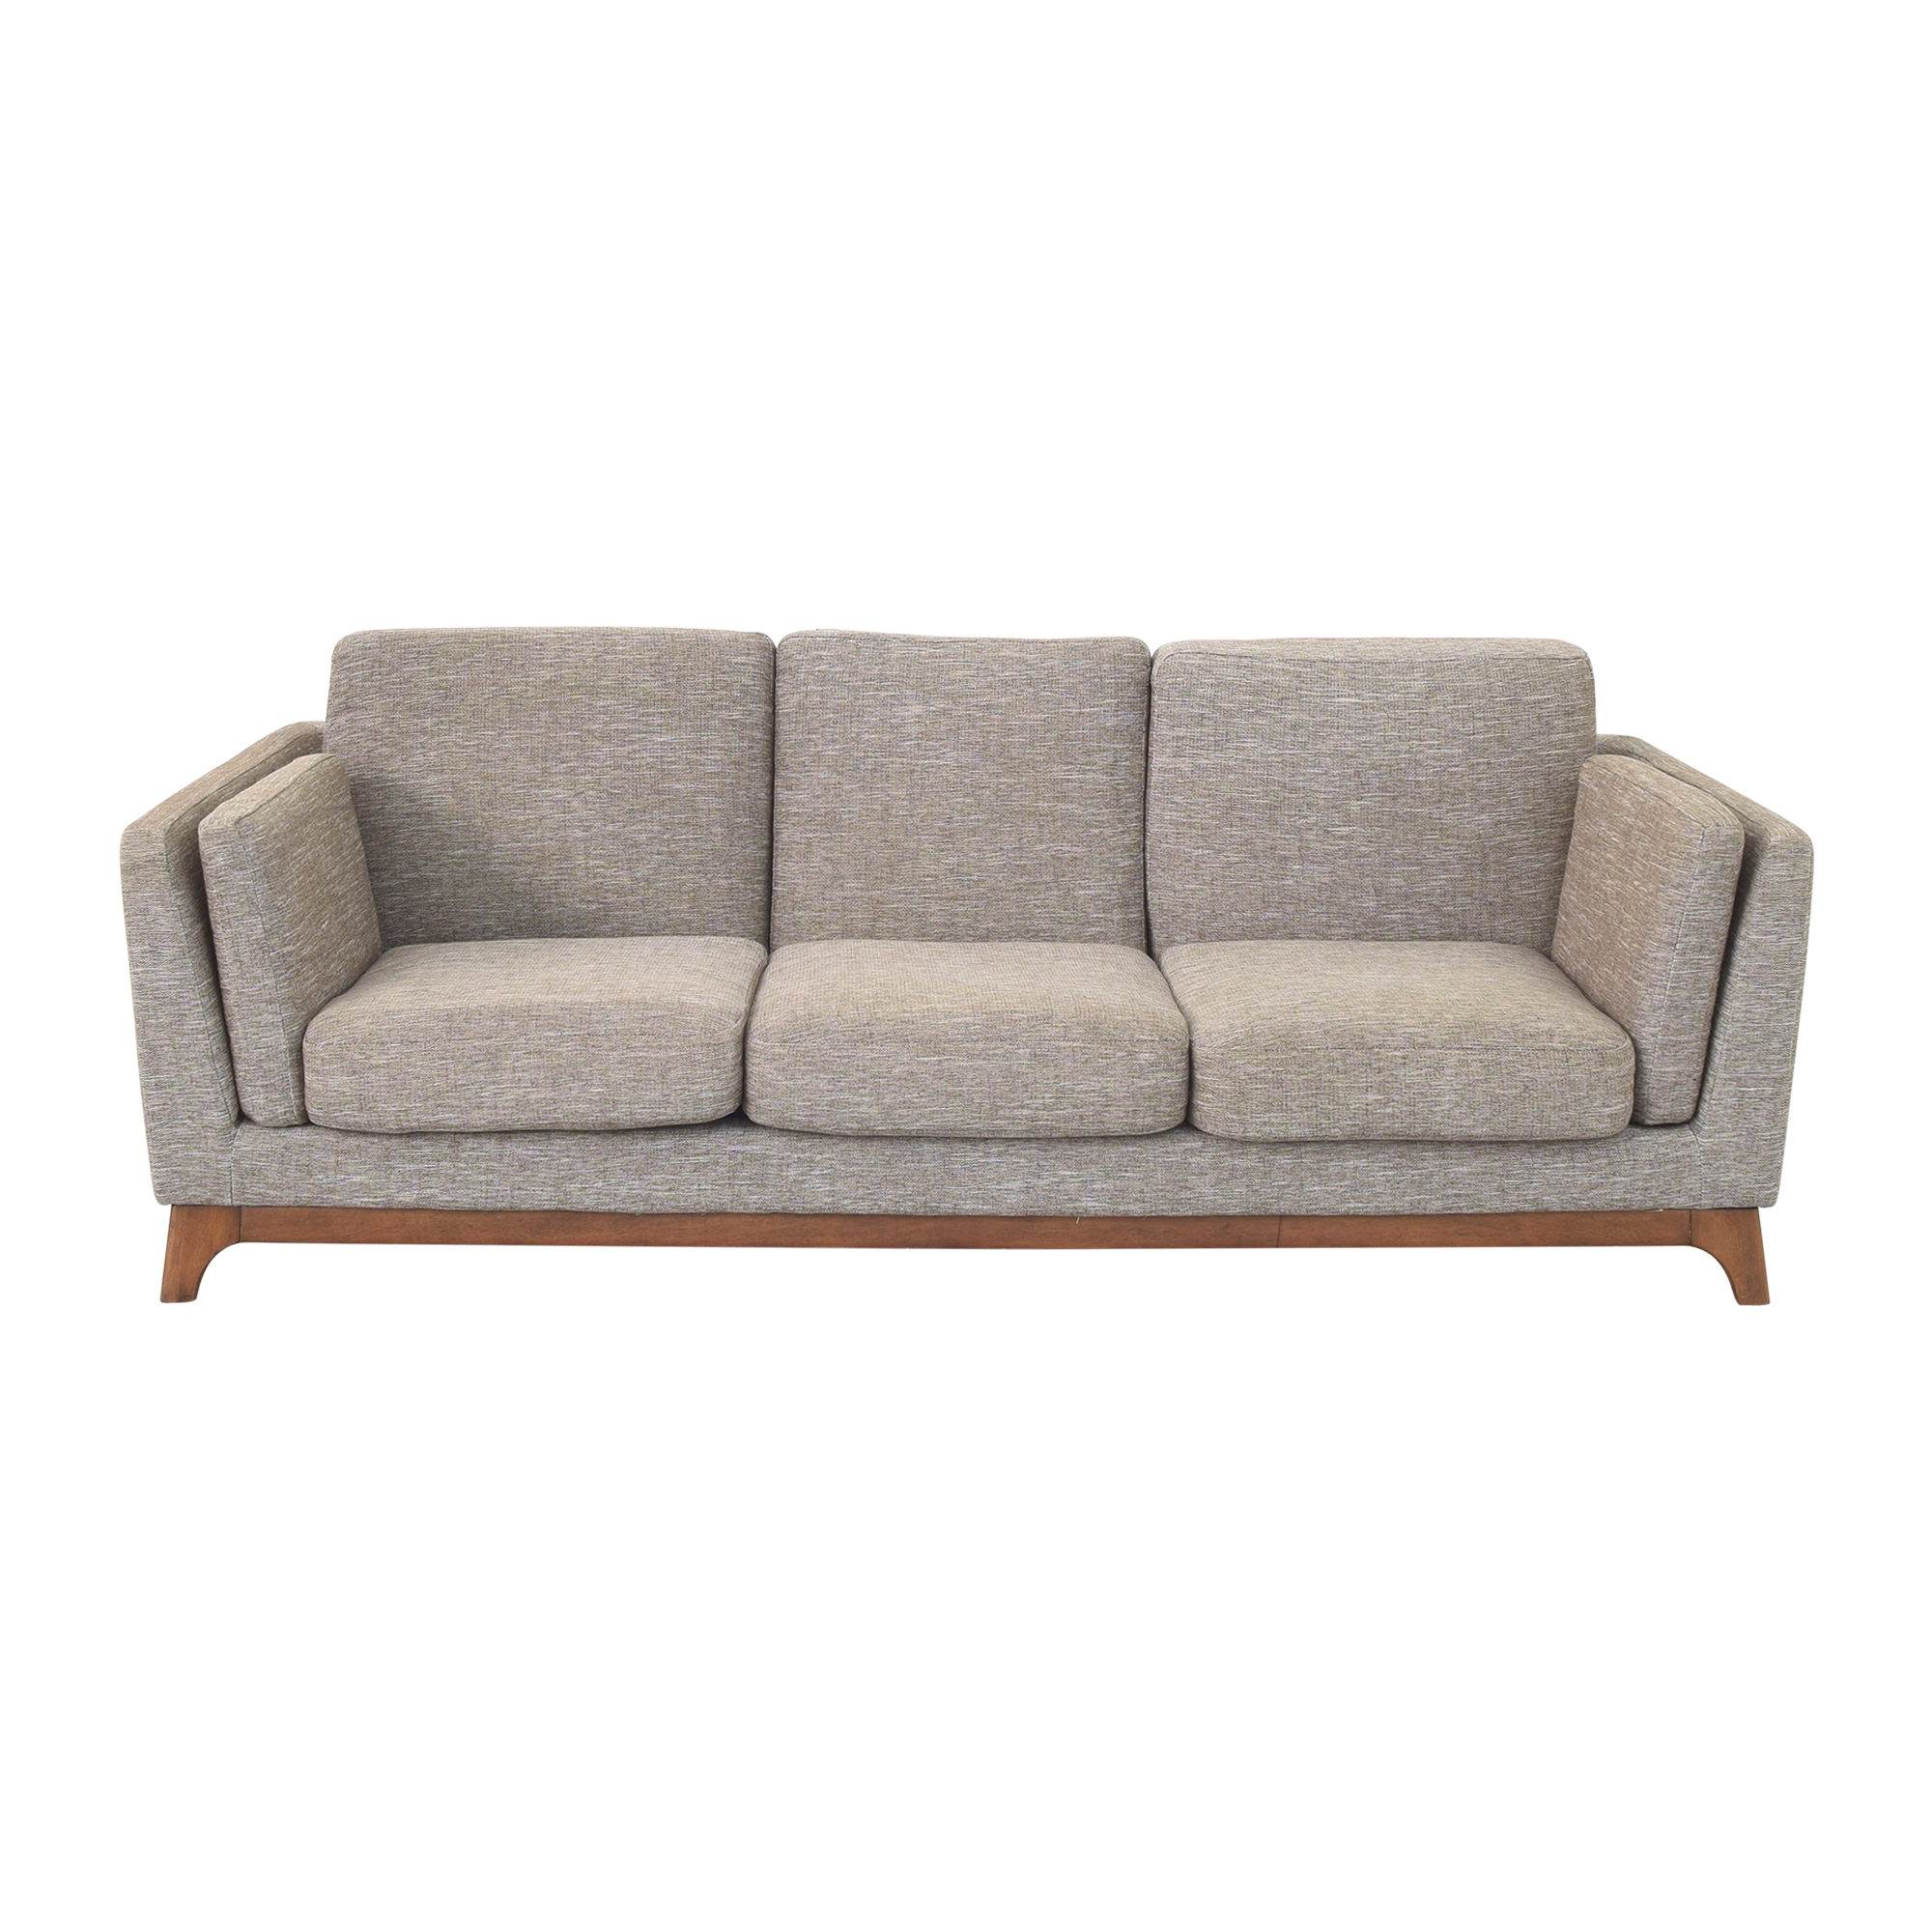 Article Article Ceni Volcanic Grey Sofa on sale